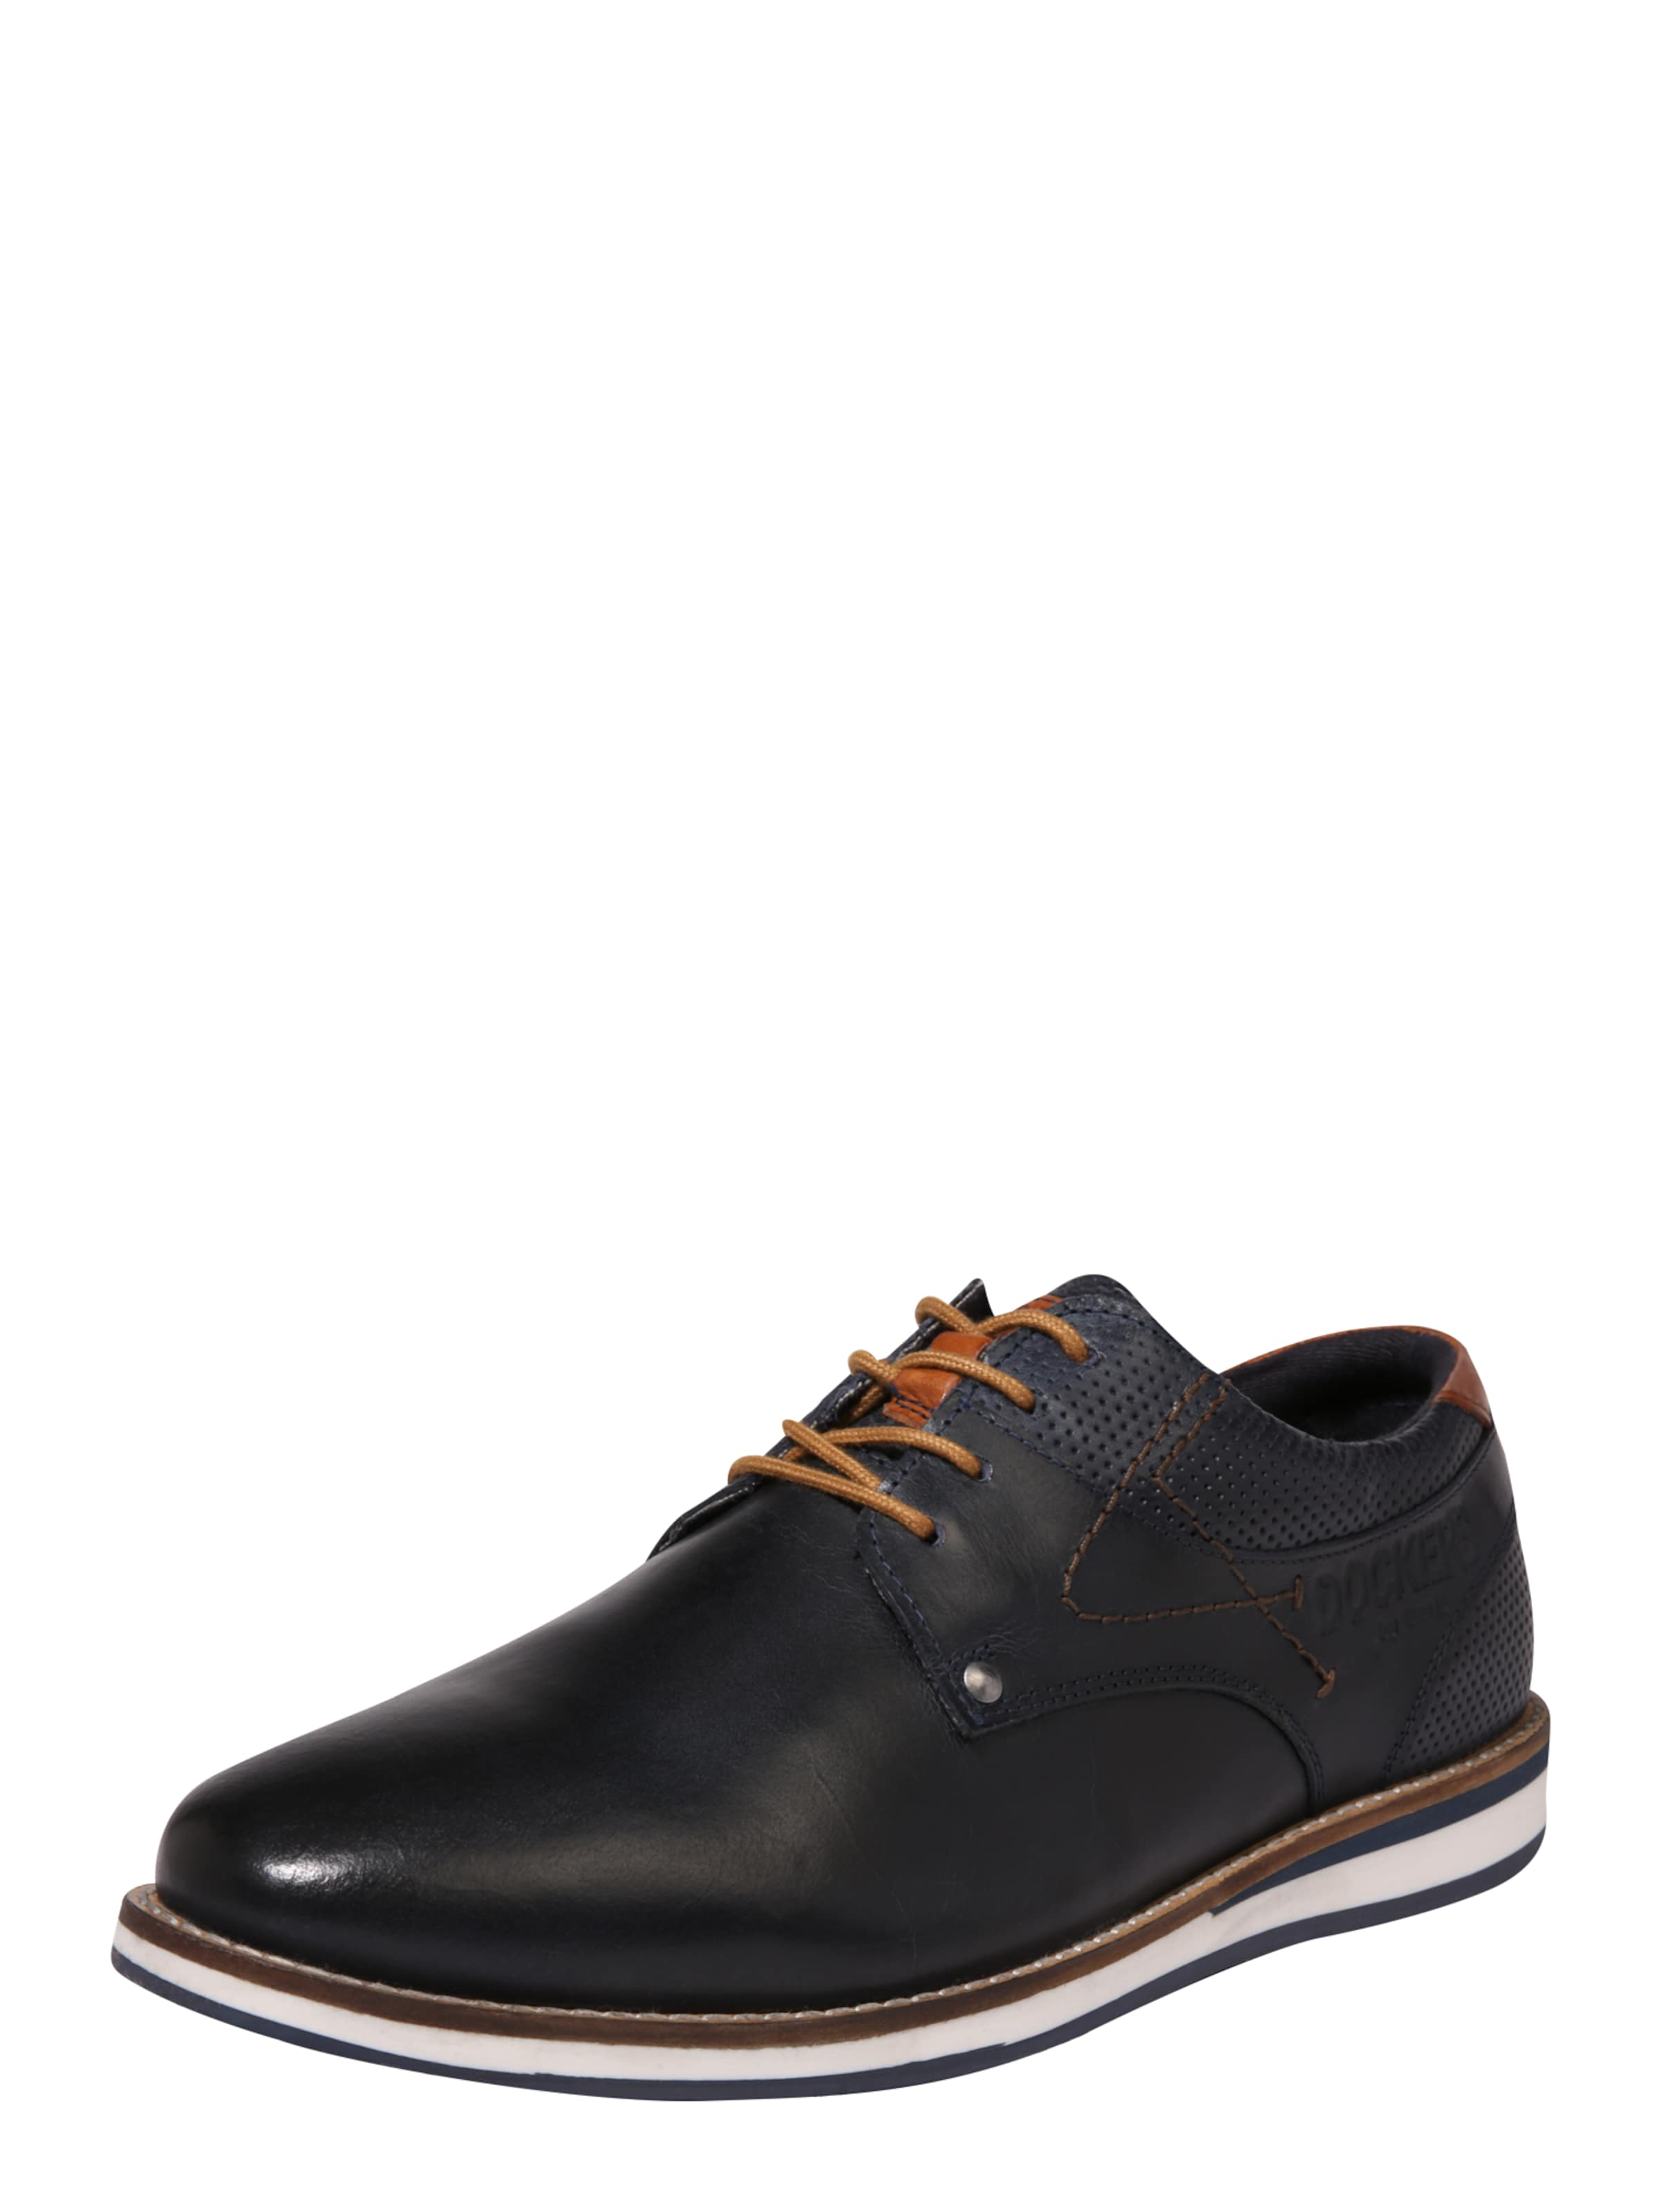 NavyCognac In Halbschuhe By Dockers Gerli w8kn0OPX